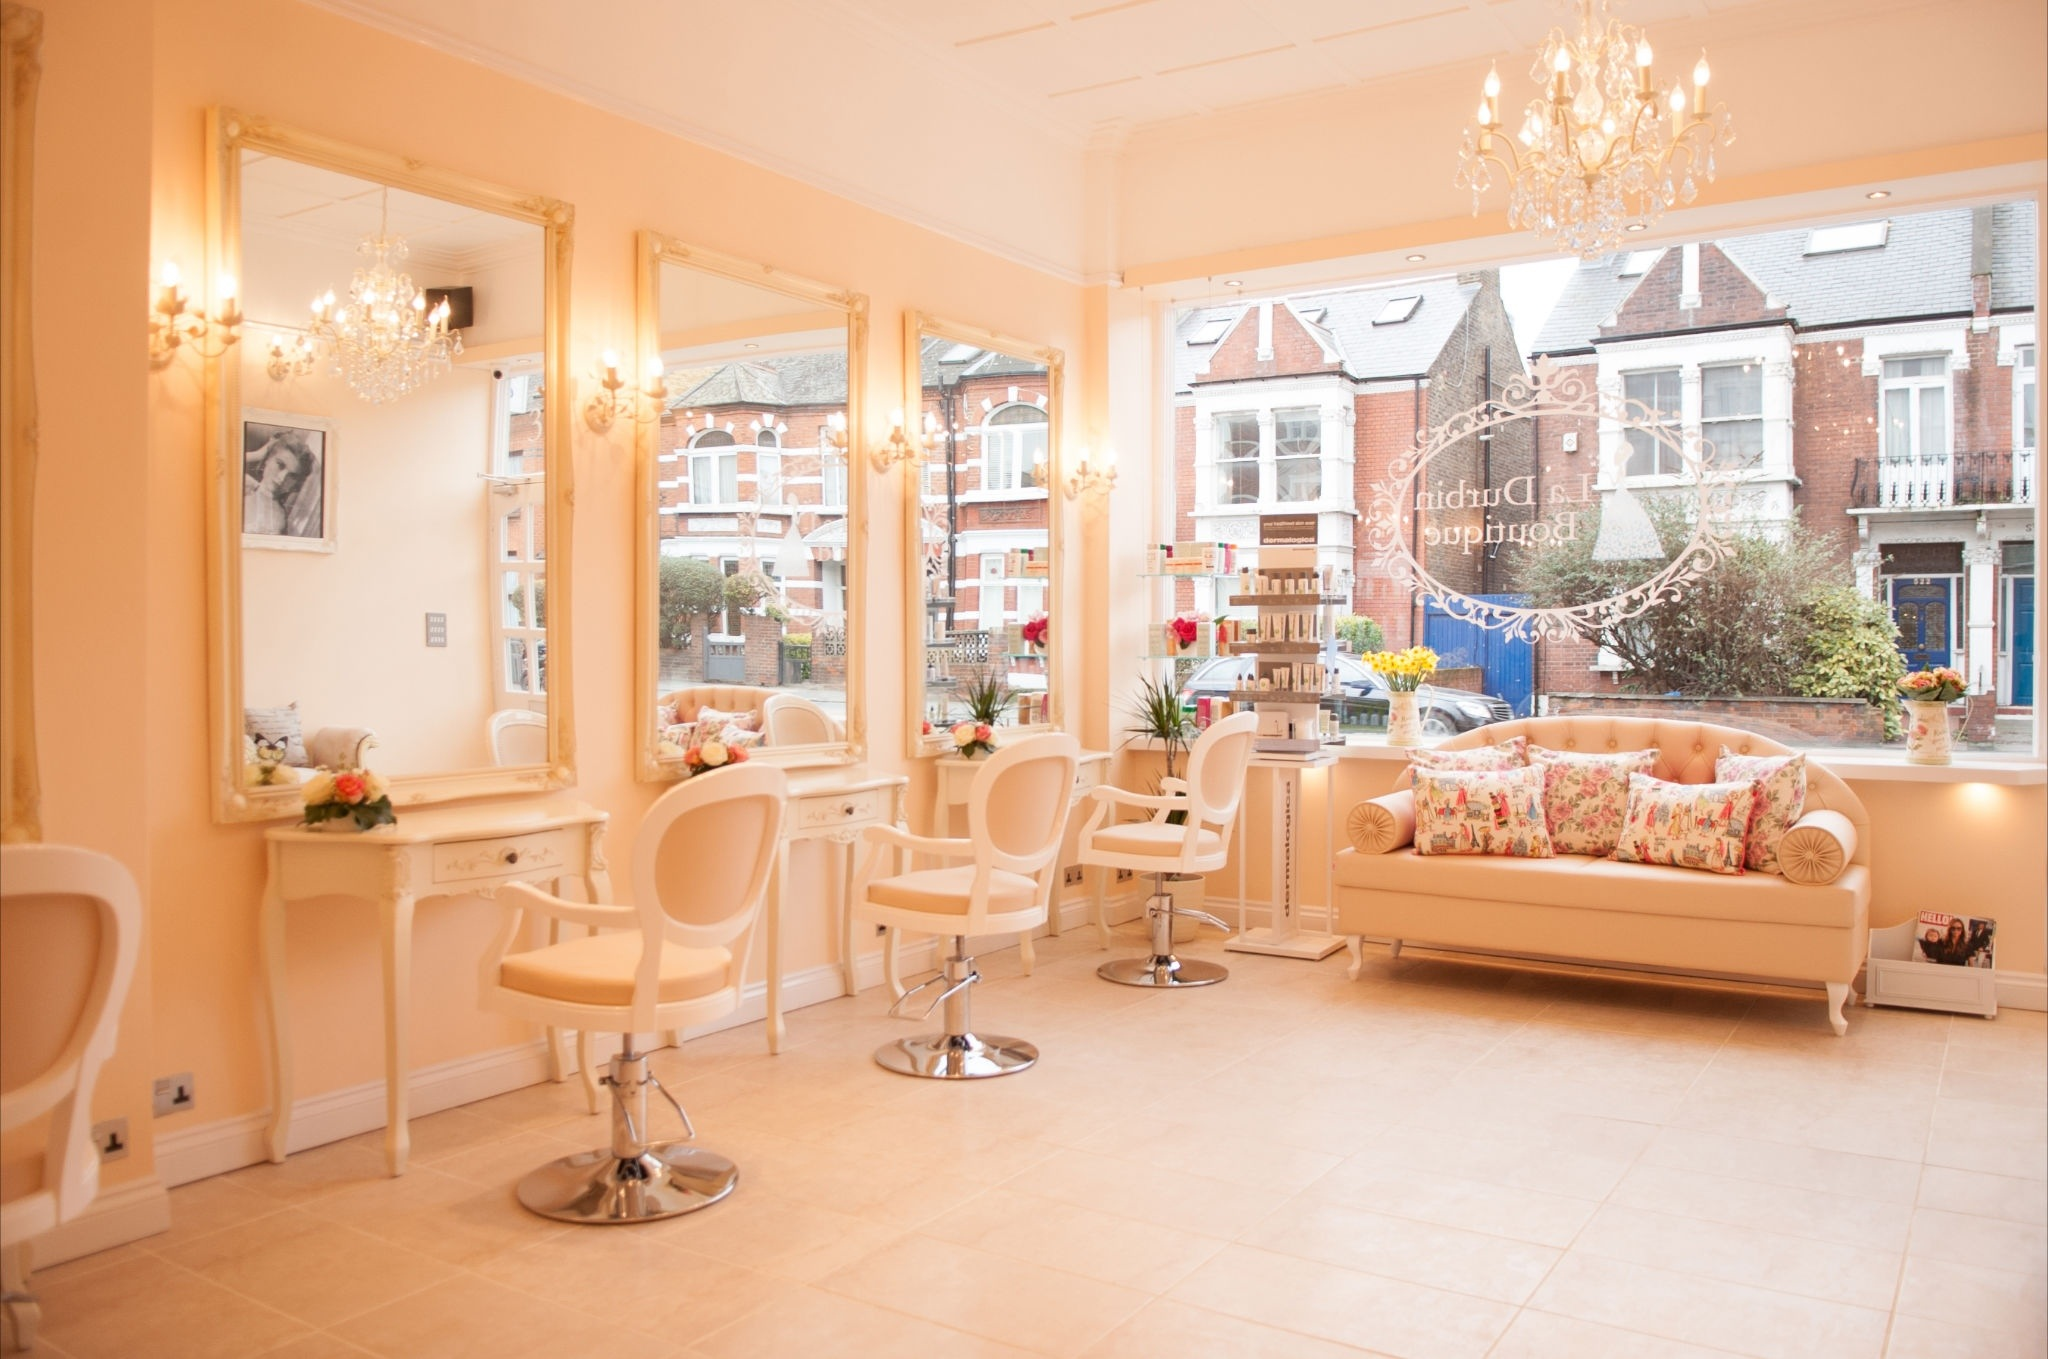 Beauty Salon La Durbin Boutique The Chic Fulham Salon Mummy Of Many